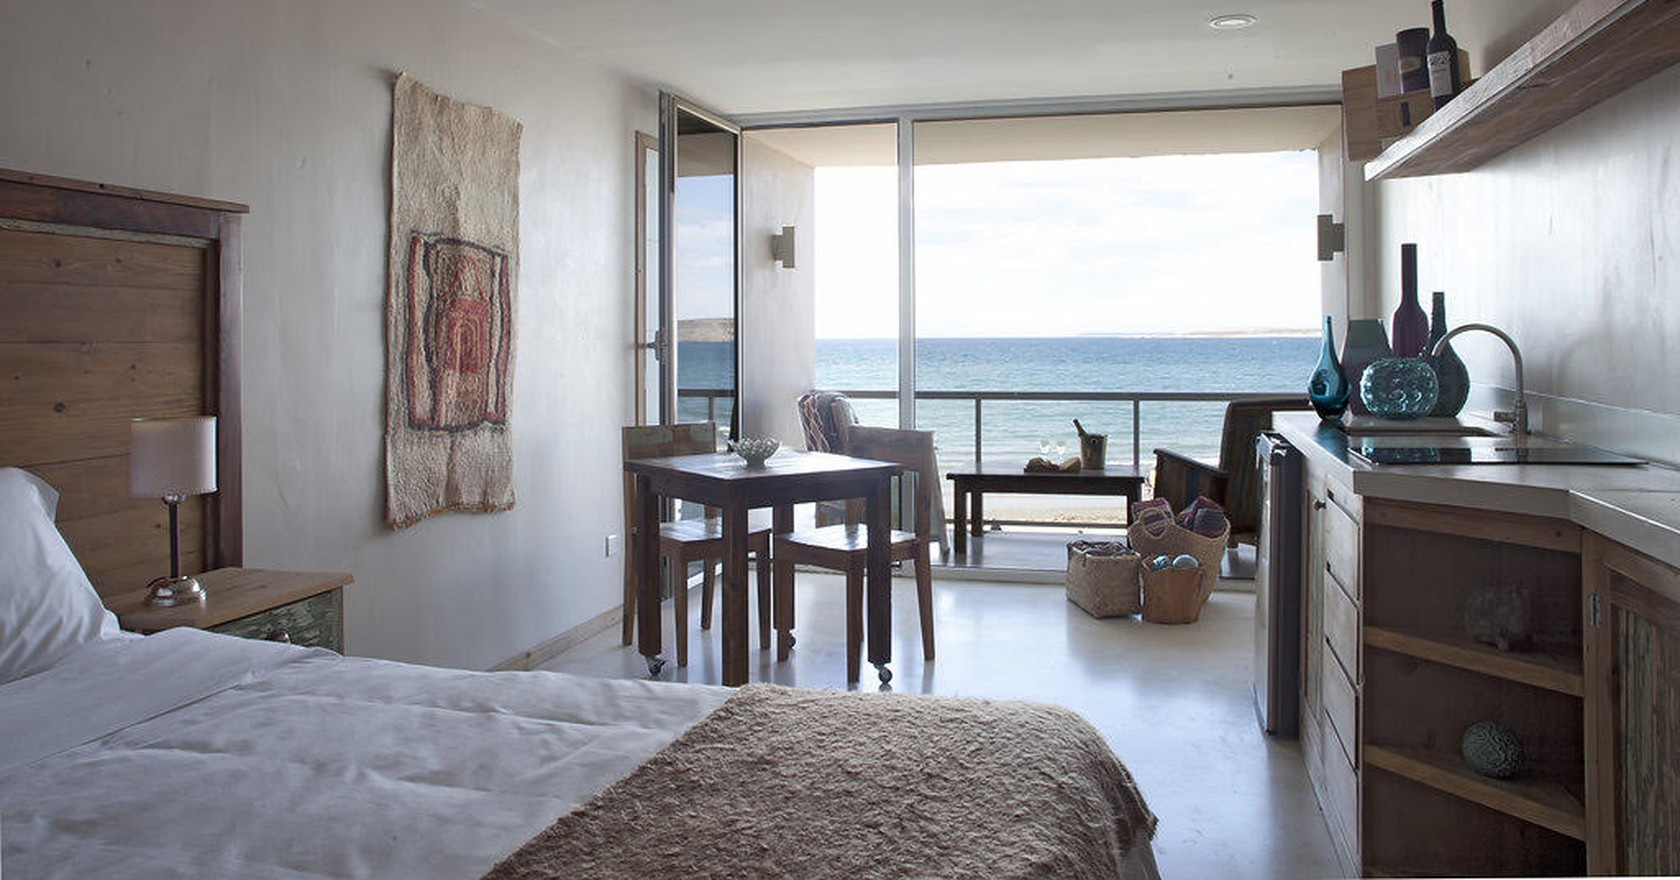 Beachside Inium At Océano Patagonia Wild Coast Residence Courtesy Of